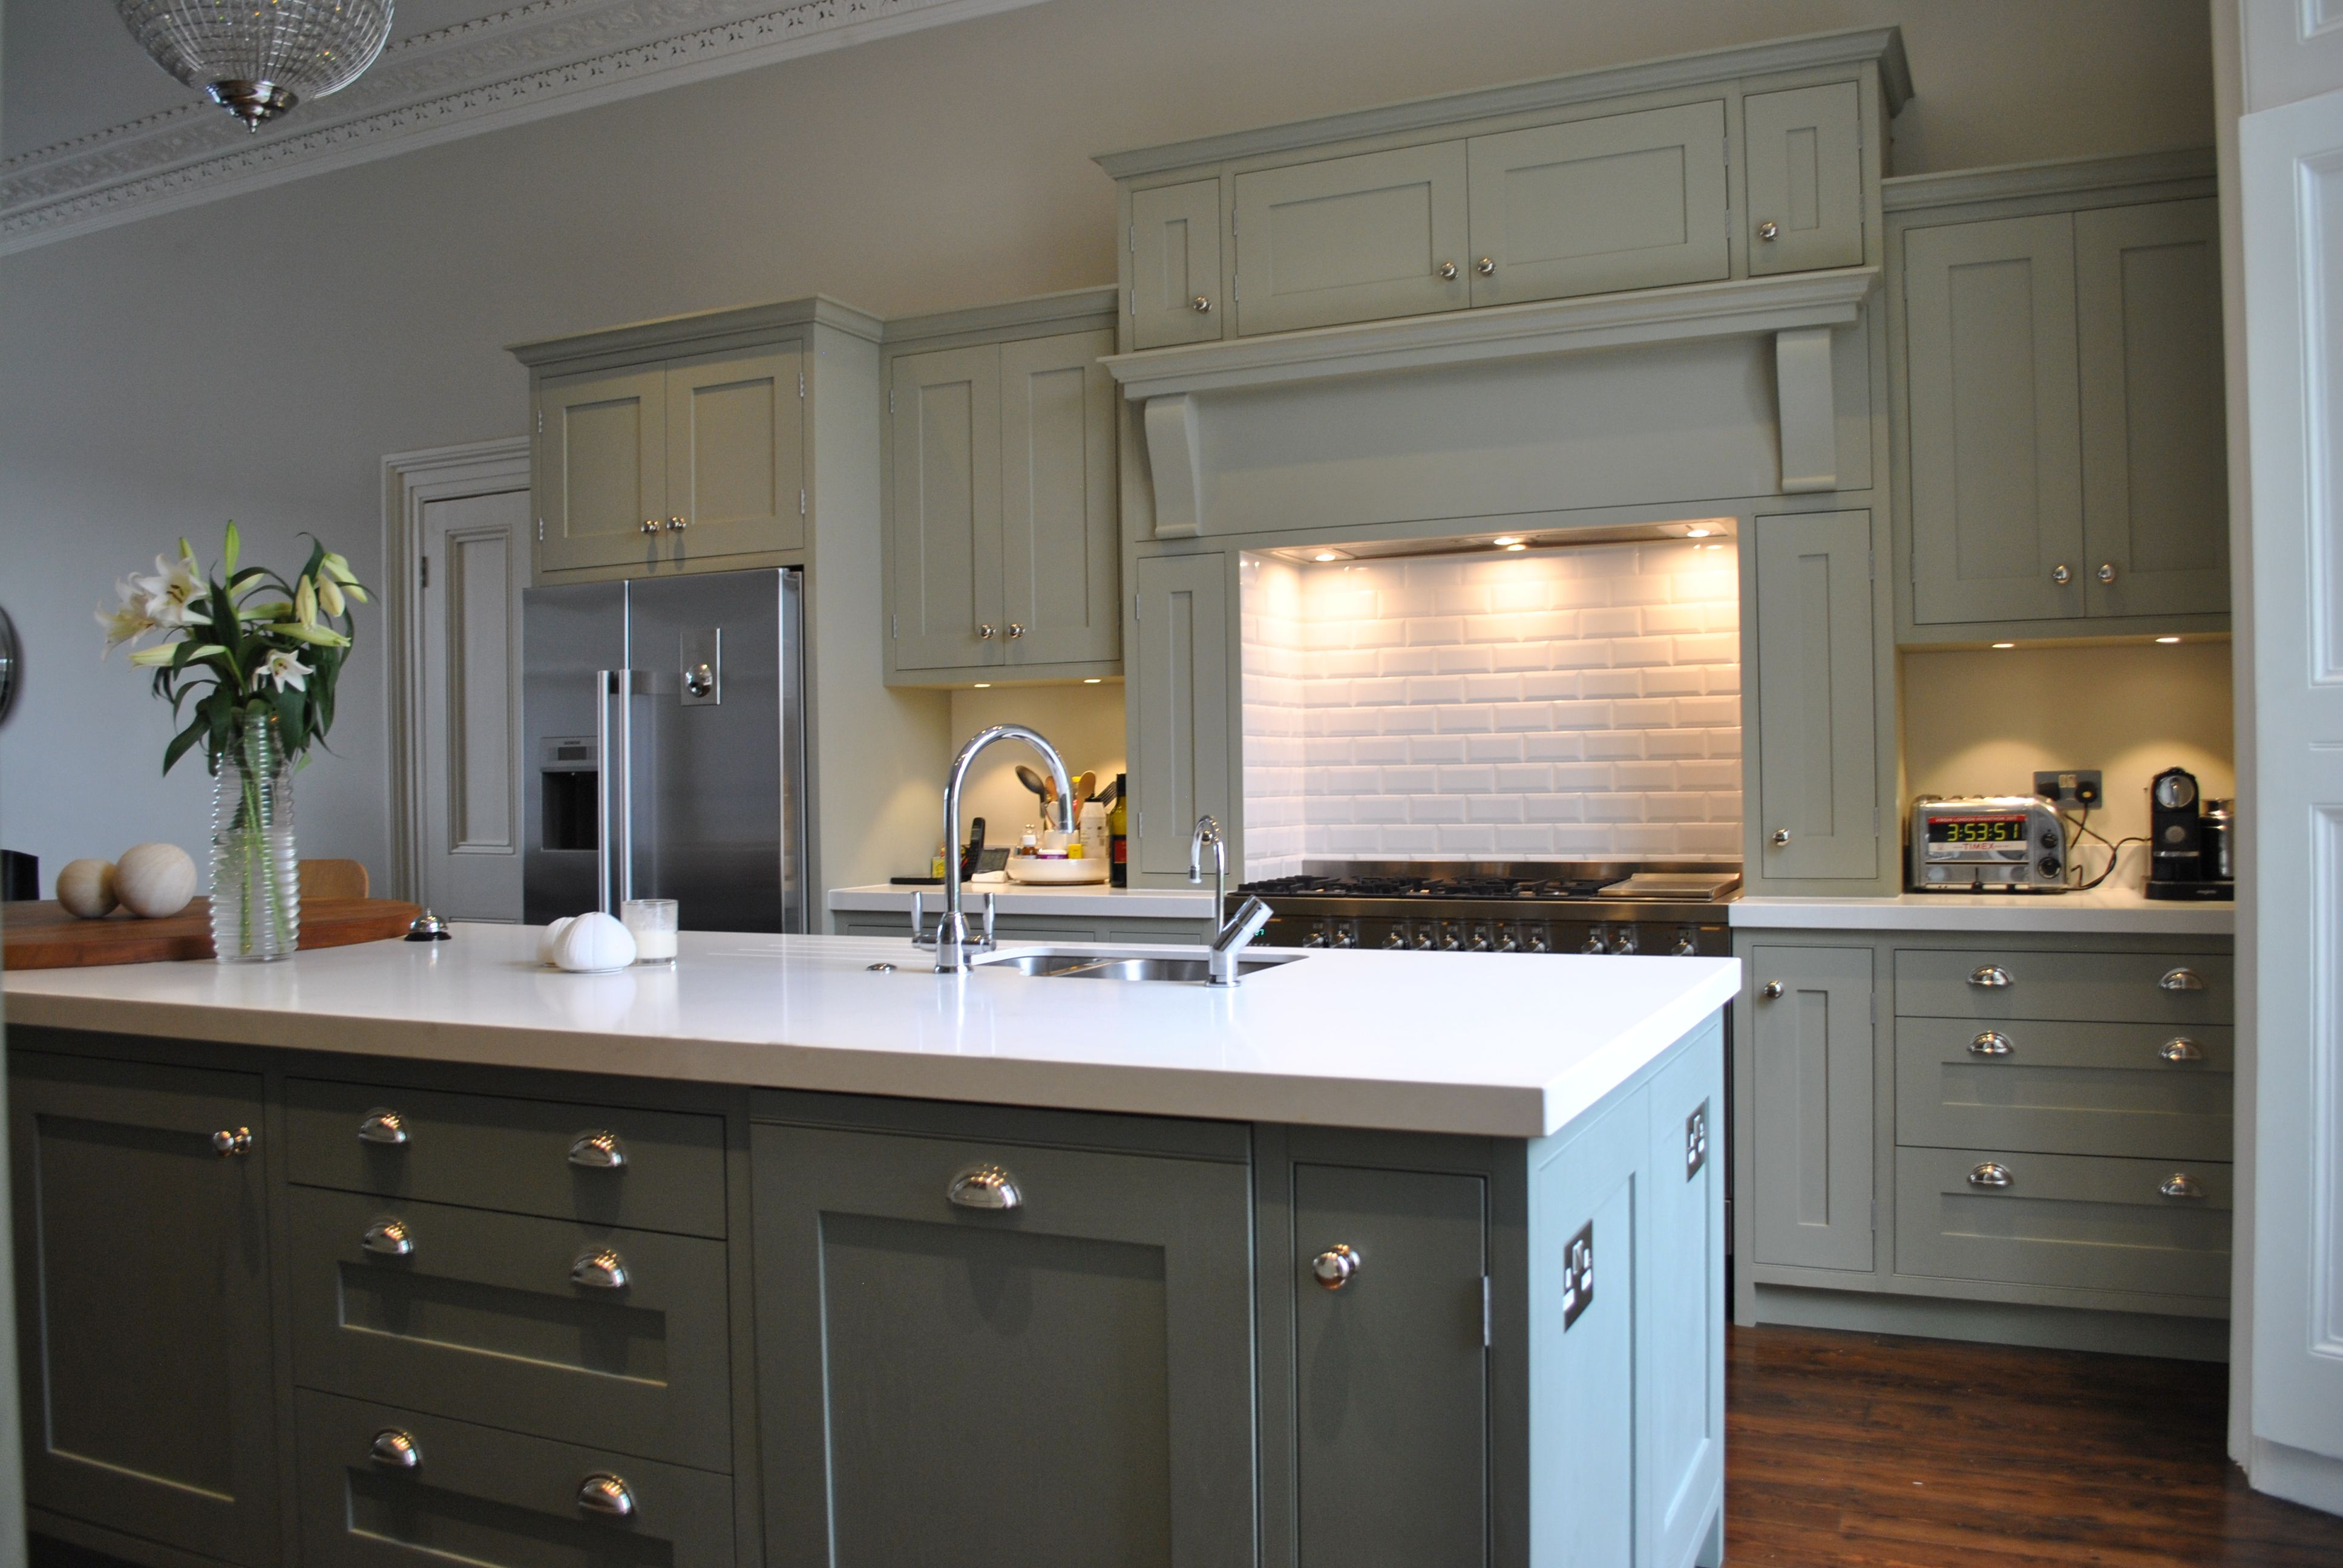 Clapham Shaker Kitchen: A Shaker Door With Beading On The Frame In Solid Oak